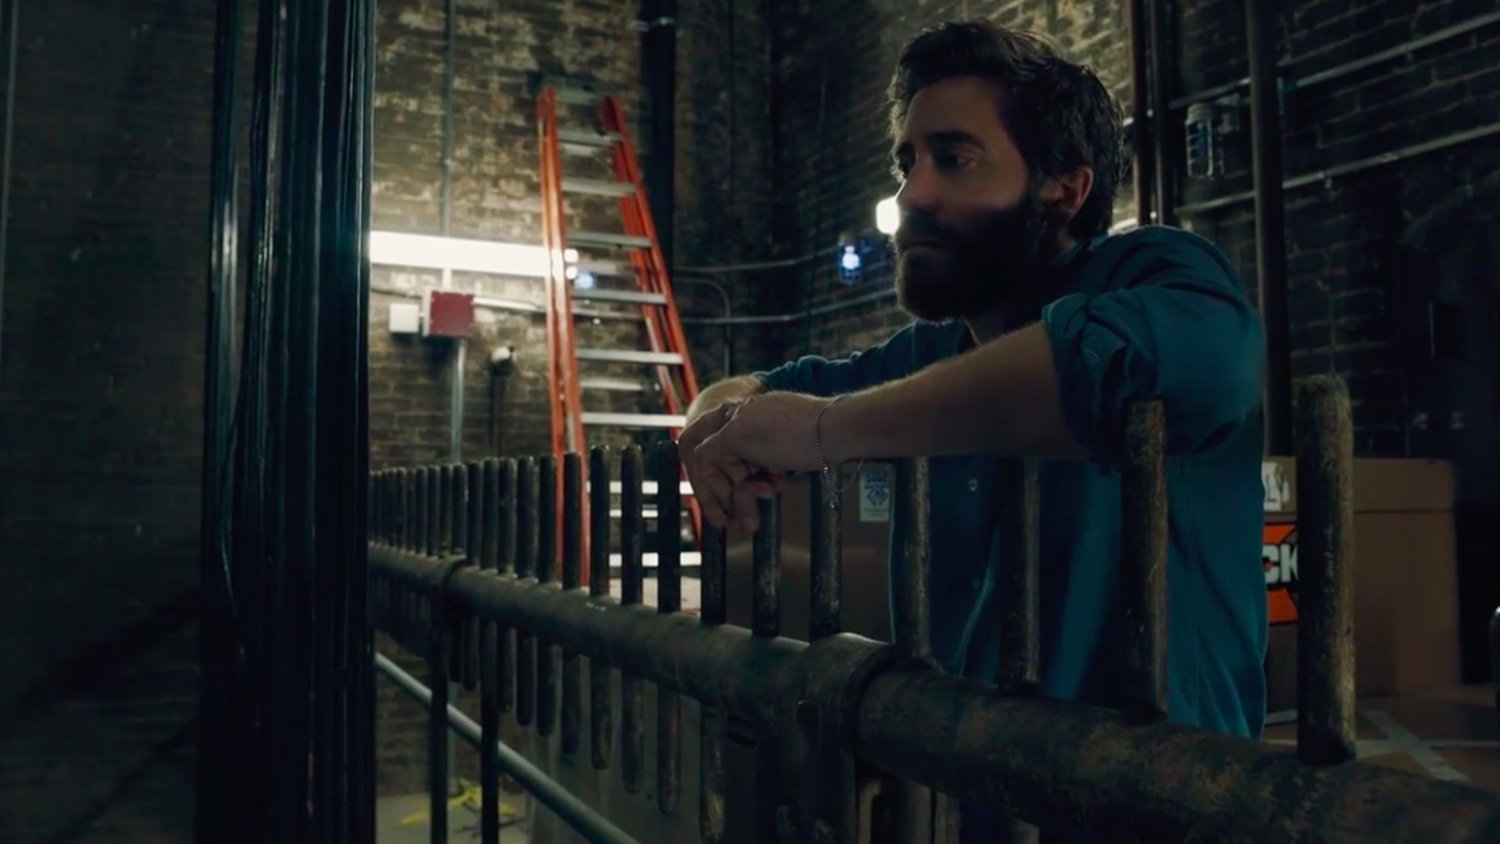 Jake Gyllenhaal Shows Off His Pipes in Video Directed by Cary Joji Fukunaga